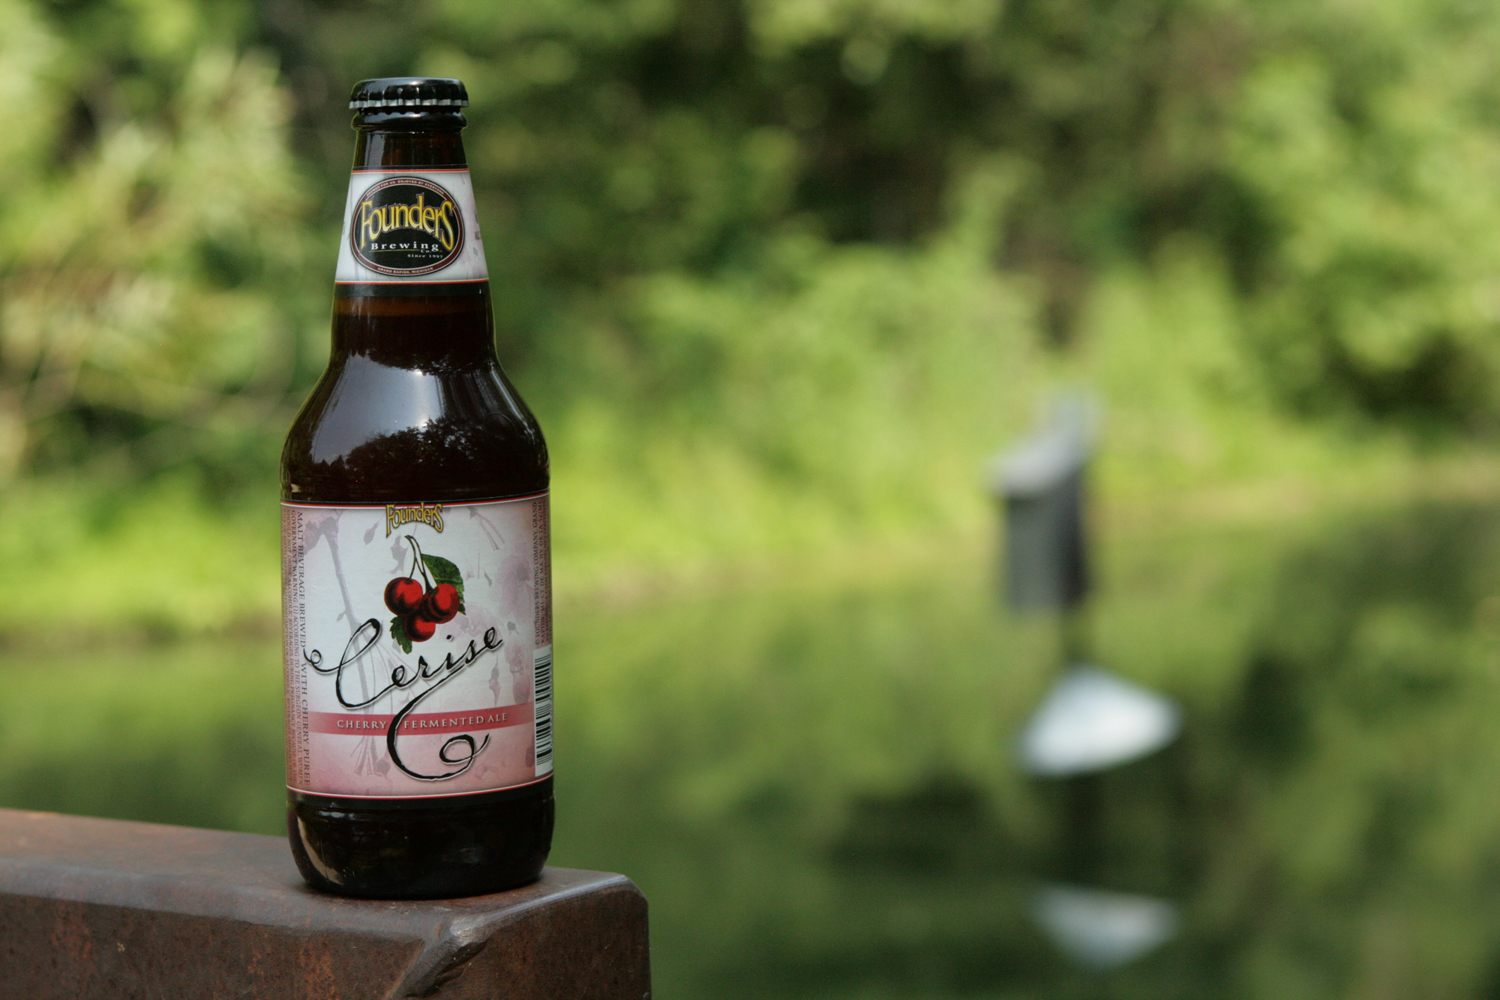 Fouders Cerise summer cherry beer for the lake.